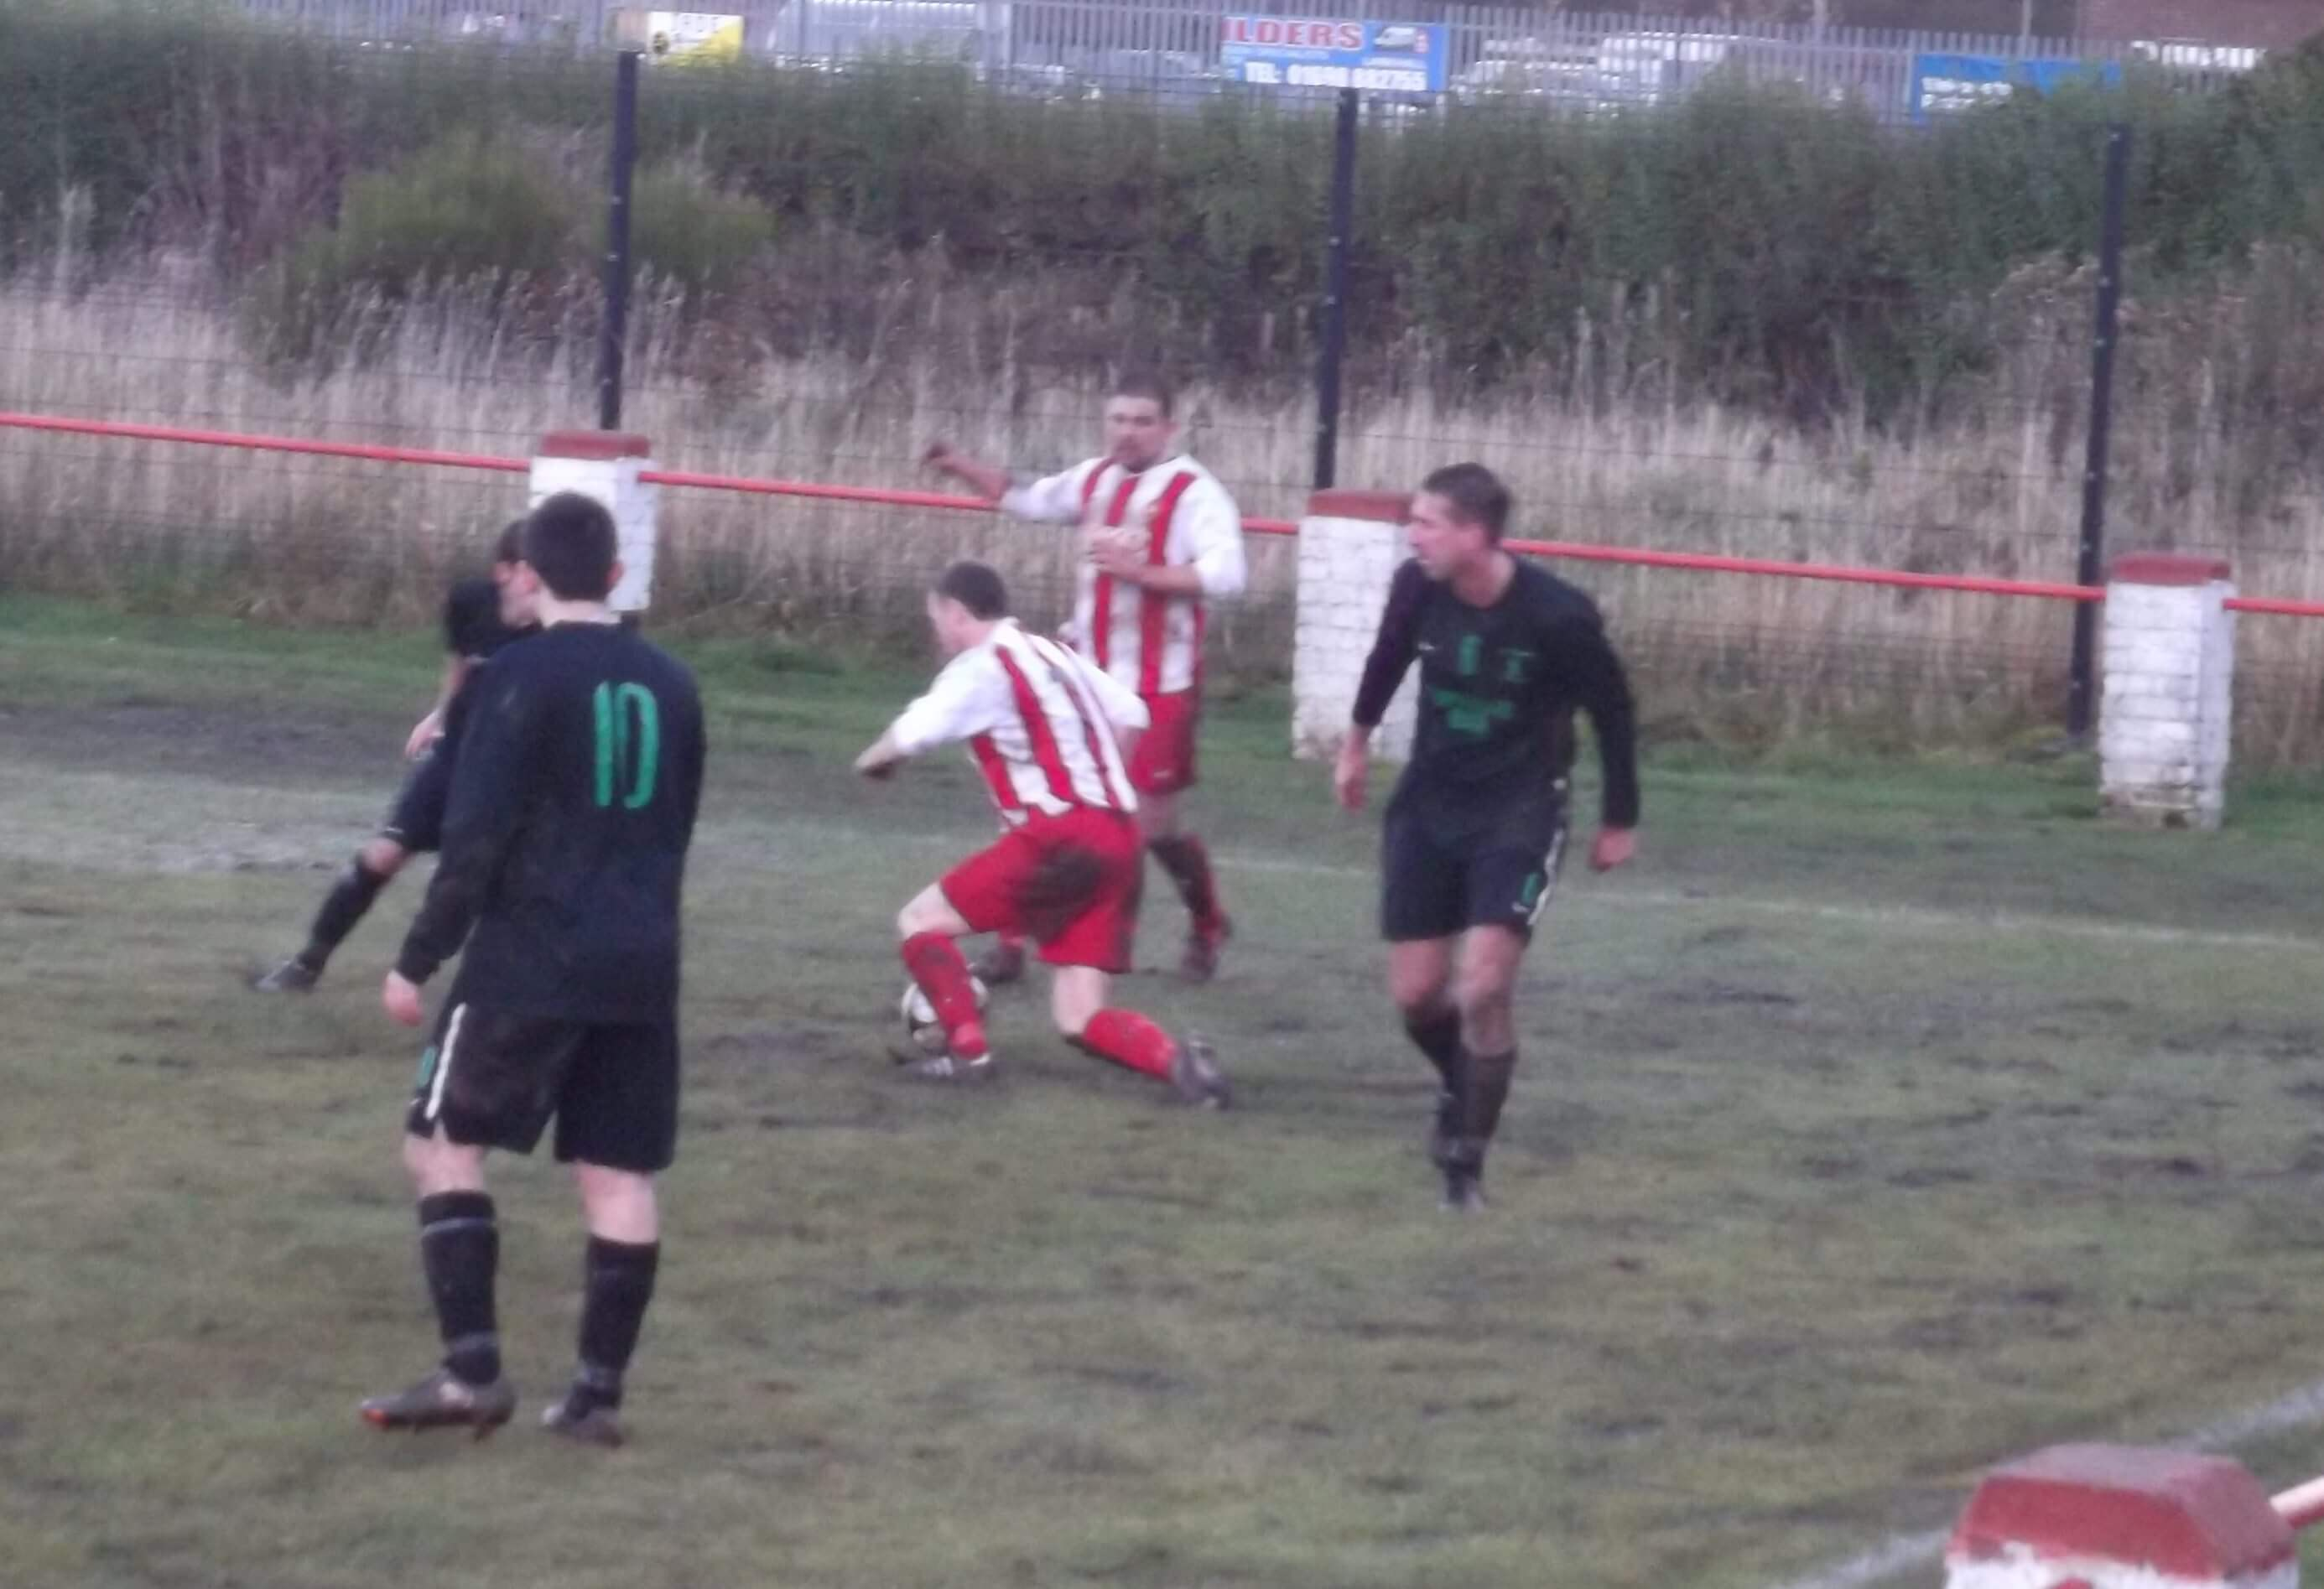 Larkhall Thistle v St Roch's 3 - Jags' Brian Jack jinks in to the box watched by JP Grant